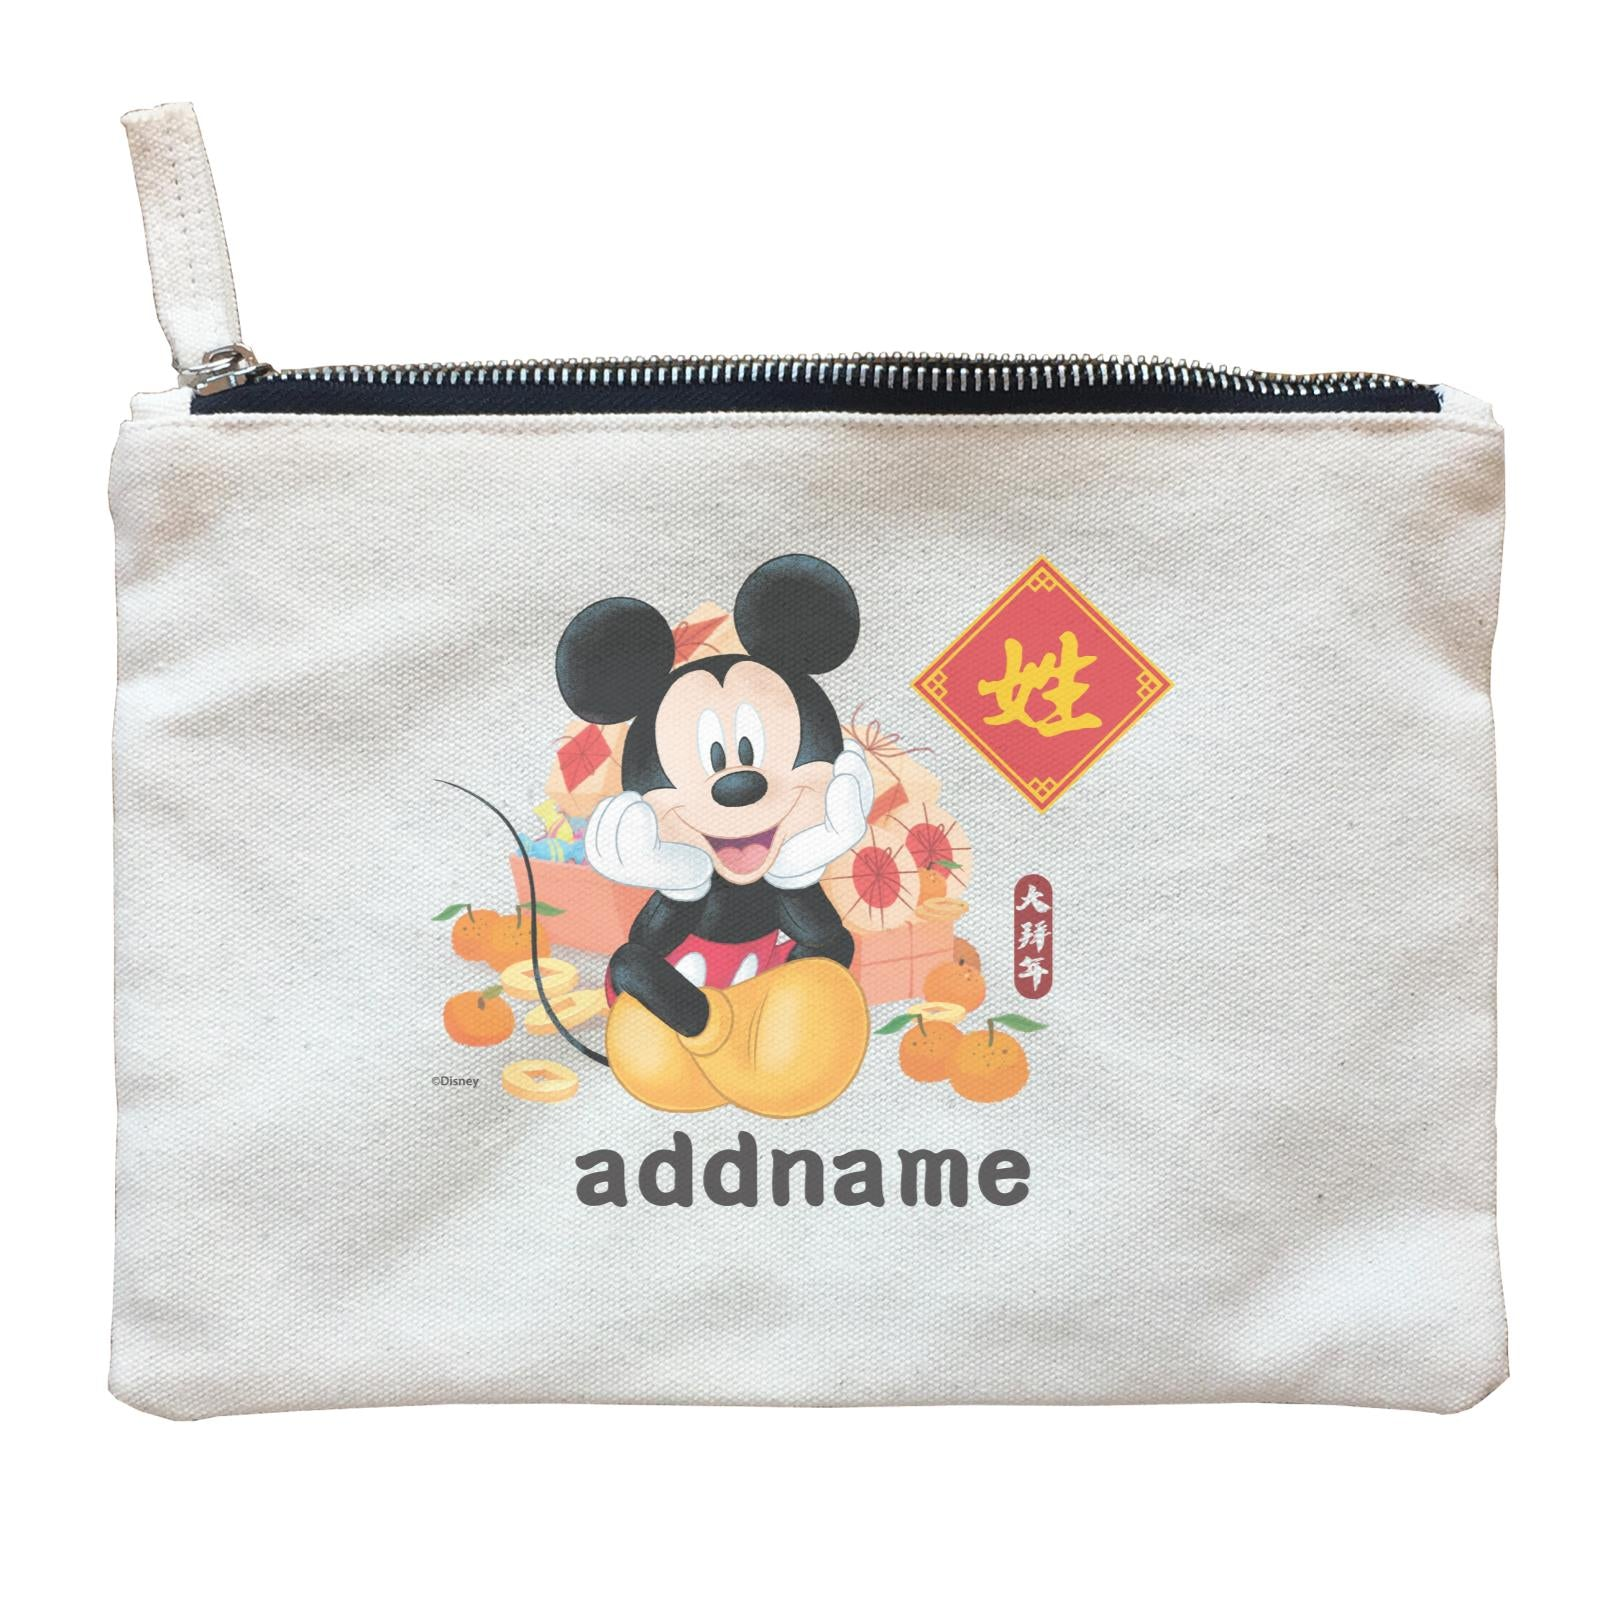 Disney CNY Mickey With Mandarins and Gold Elements Personalised ZP Zipper Pouch